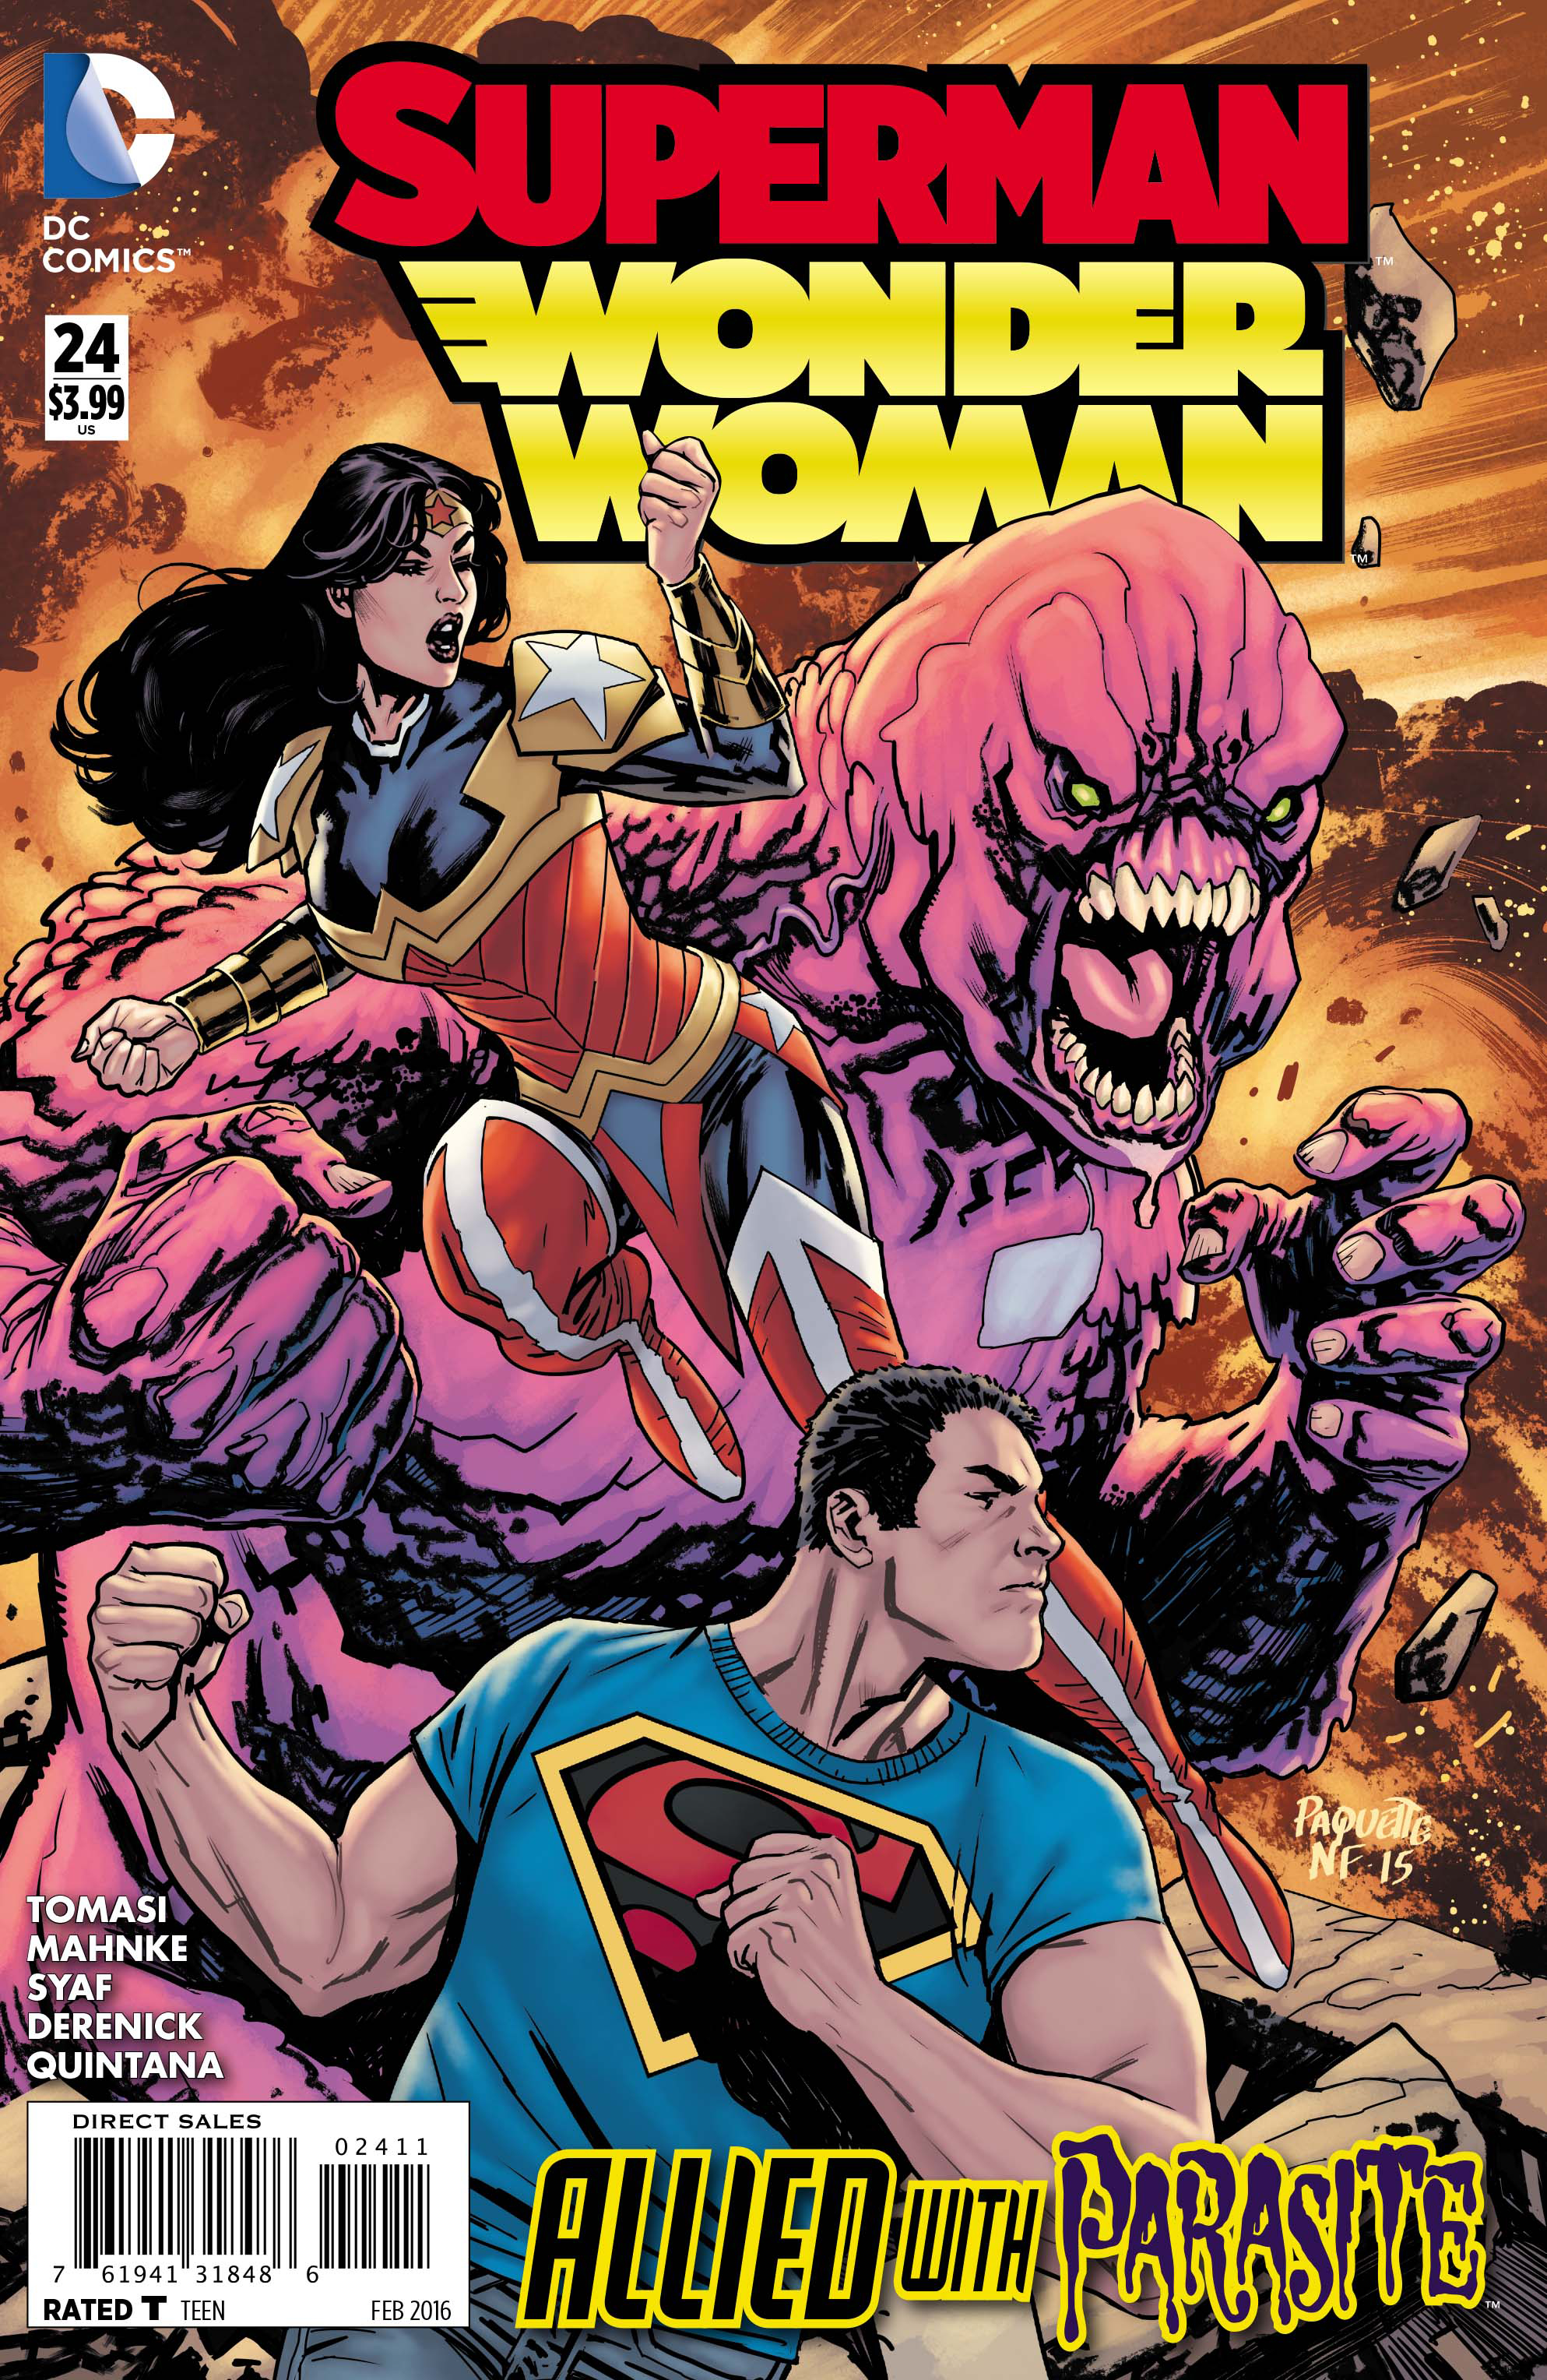 SUPERMAN WONDER WOMAN #24